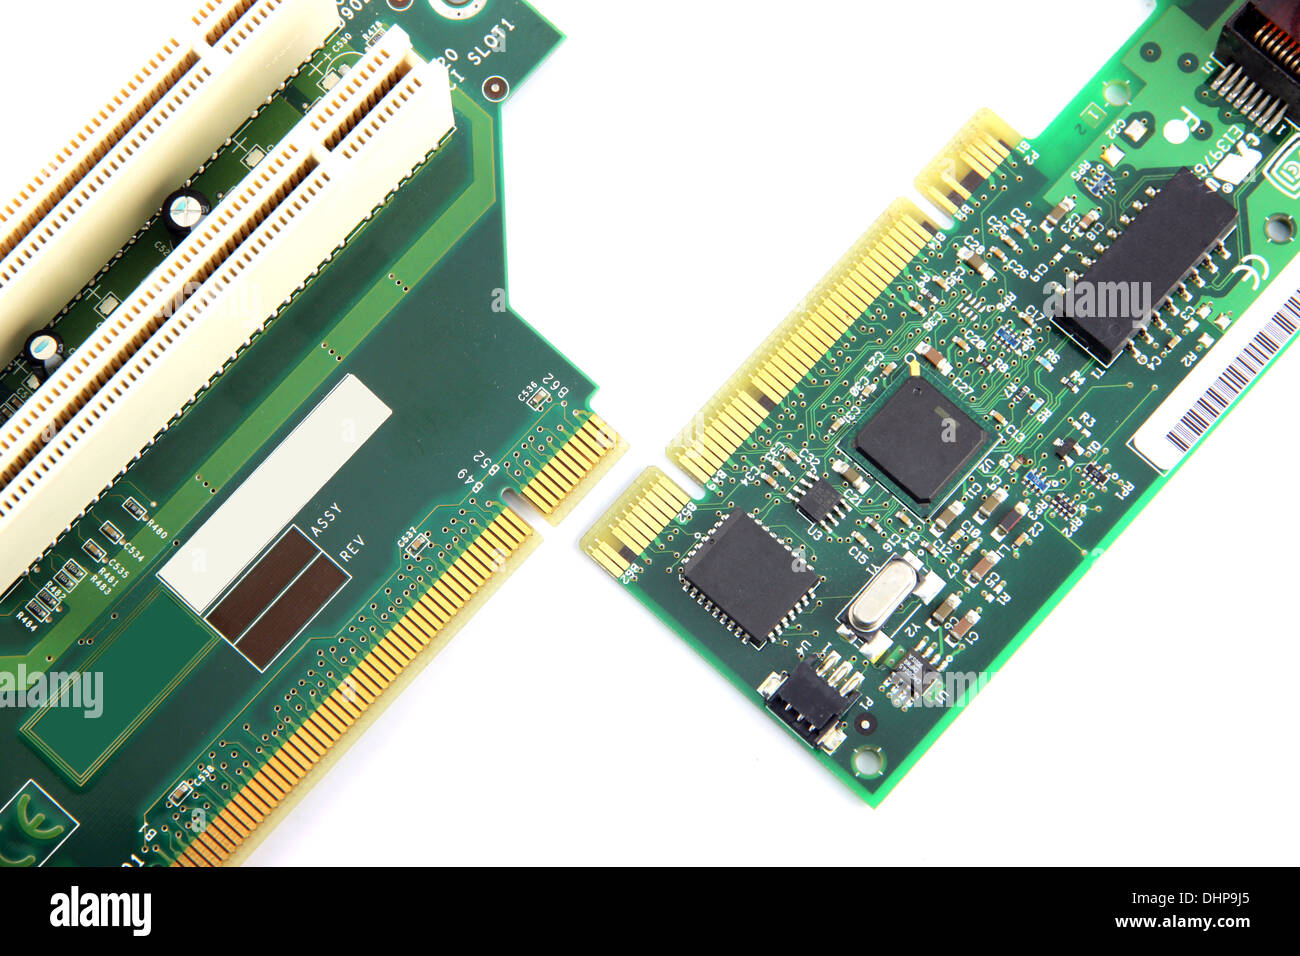 Circuit Board Recycling Equipmentcircuit Electronic Mother Rom Stock Photos Images Alamy Computer Equipment On White Background Image